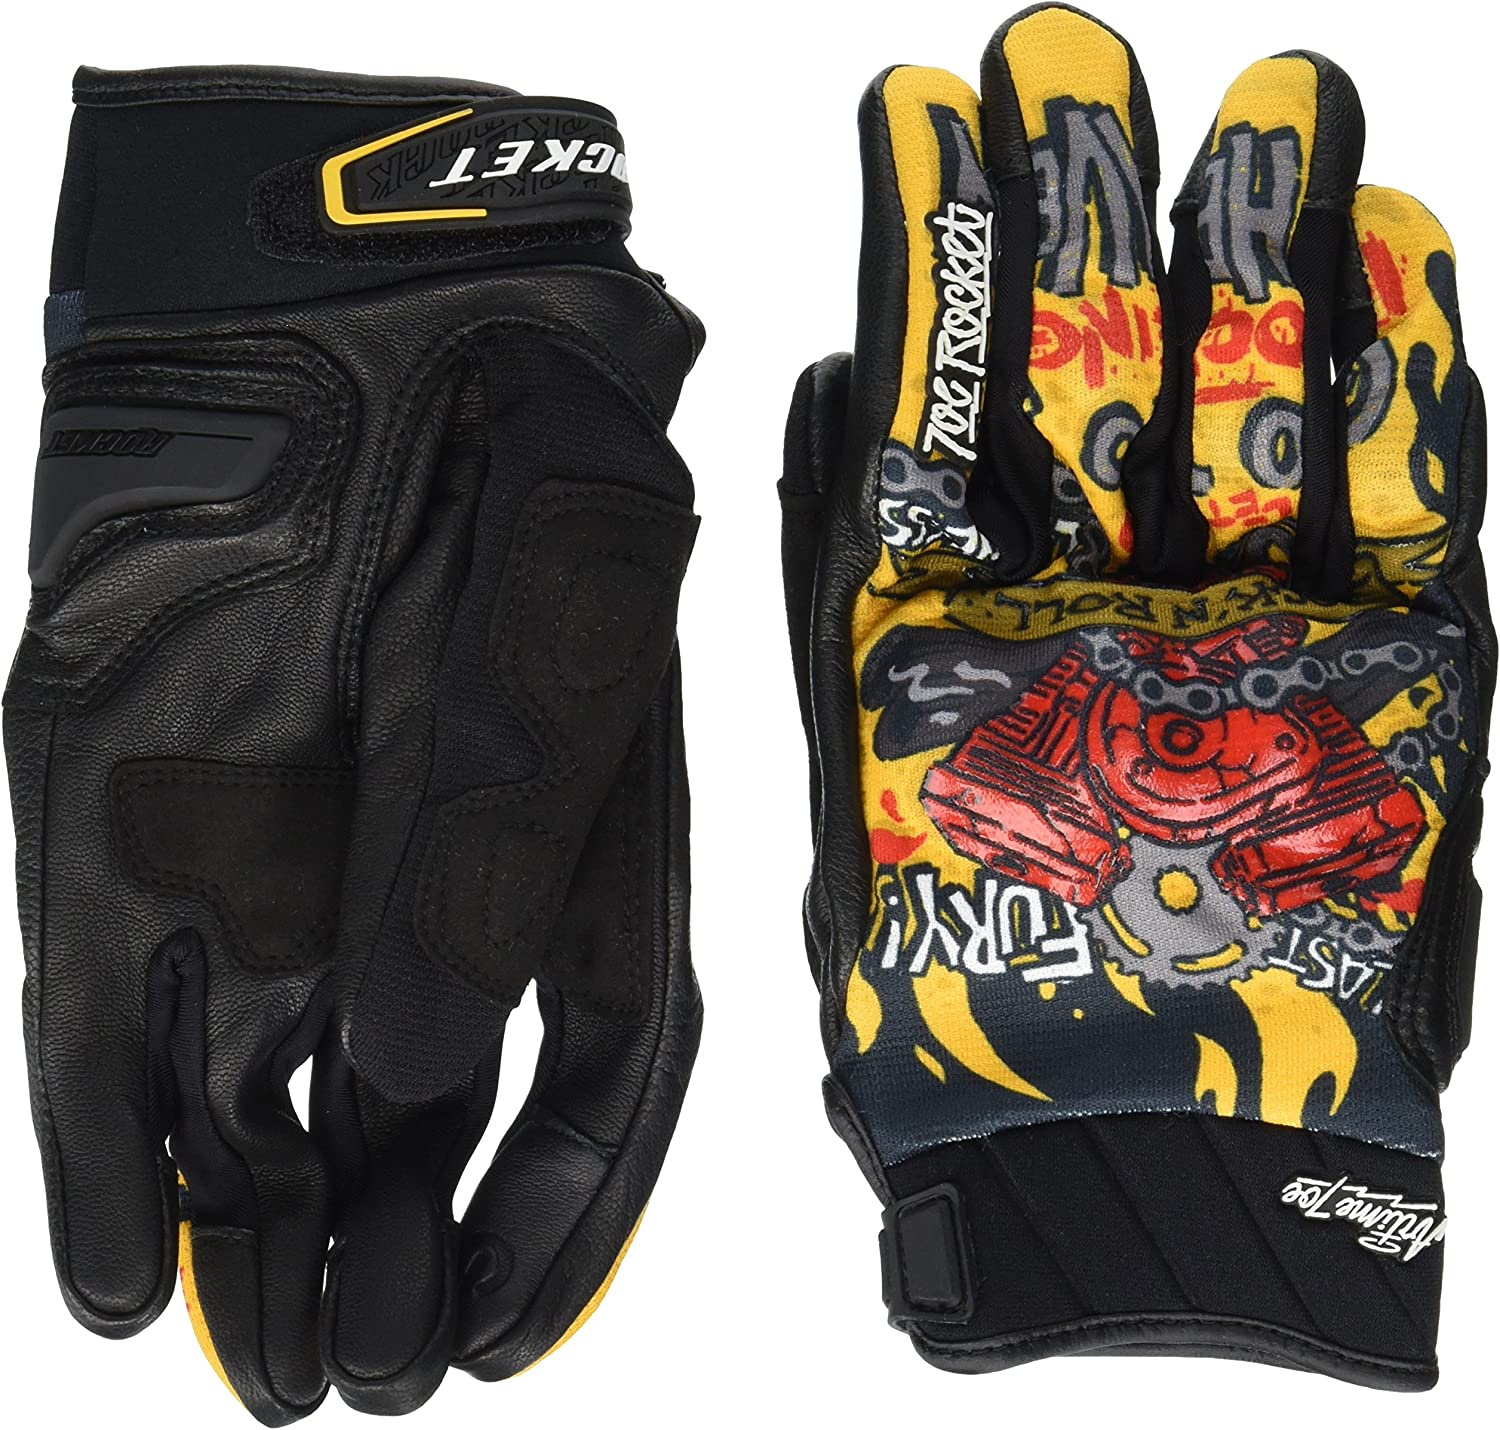 Joe Rocket Airtime Free shipping anywhere in the nation Men's Motorcycle Gloves Special Campaign Piece Maker